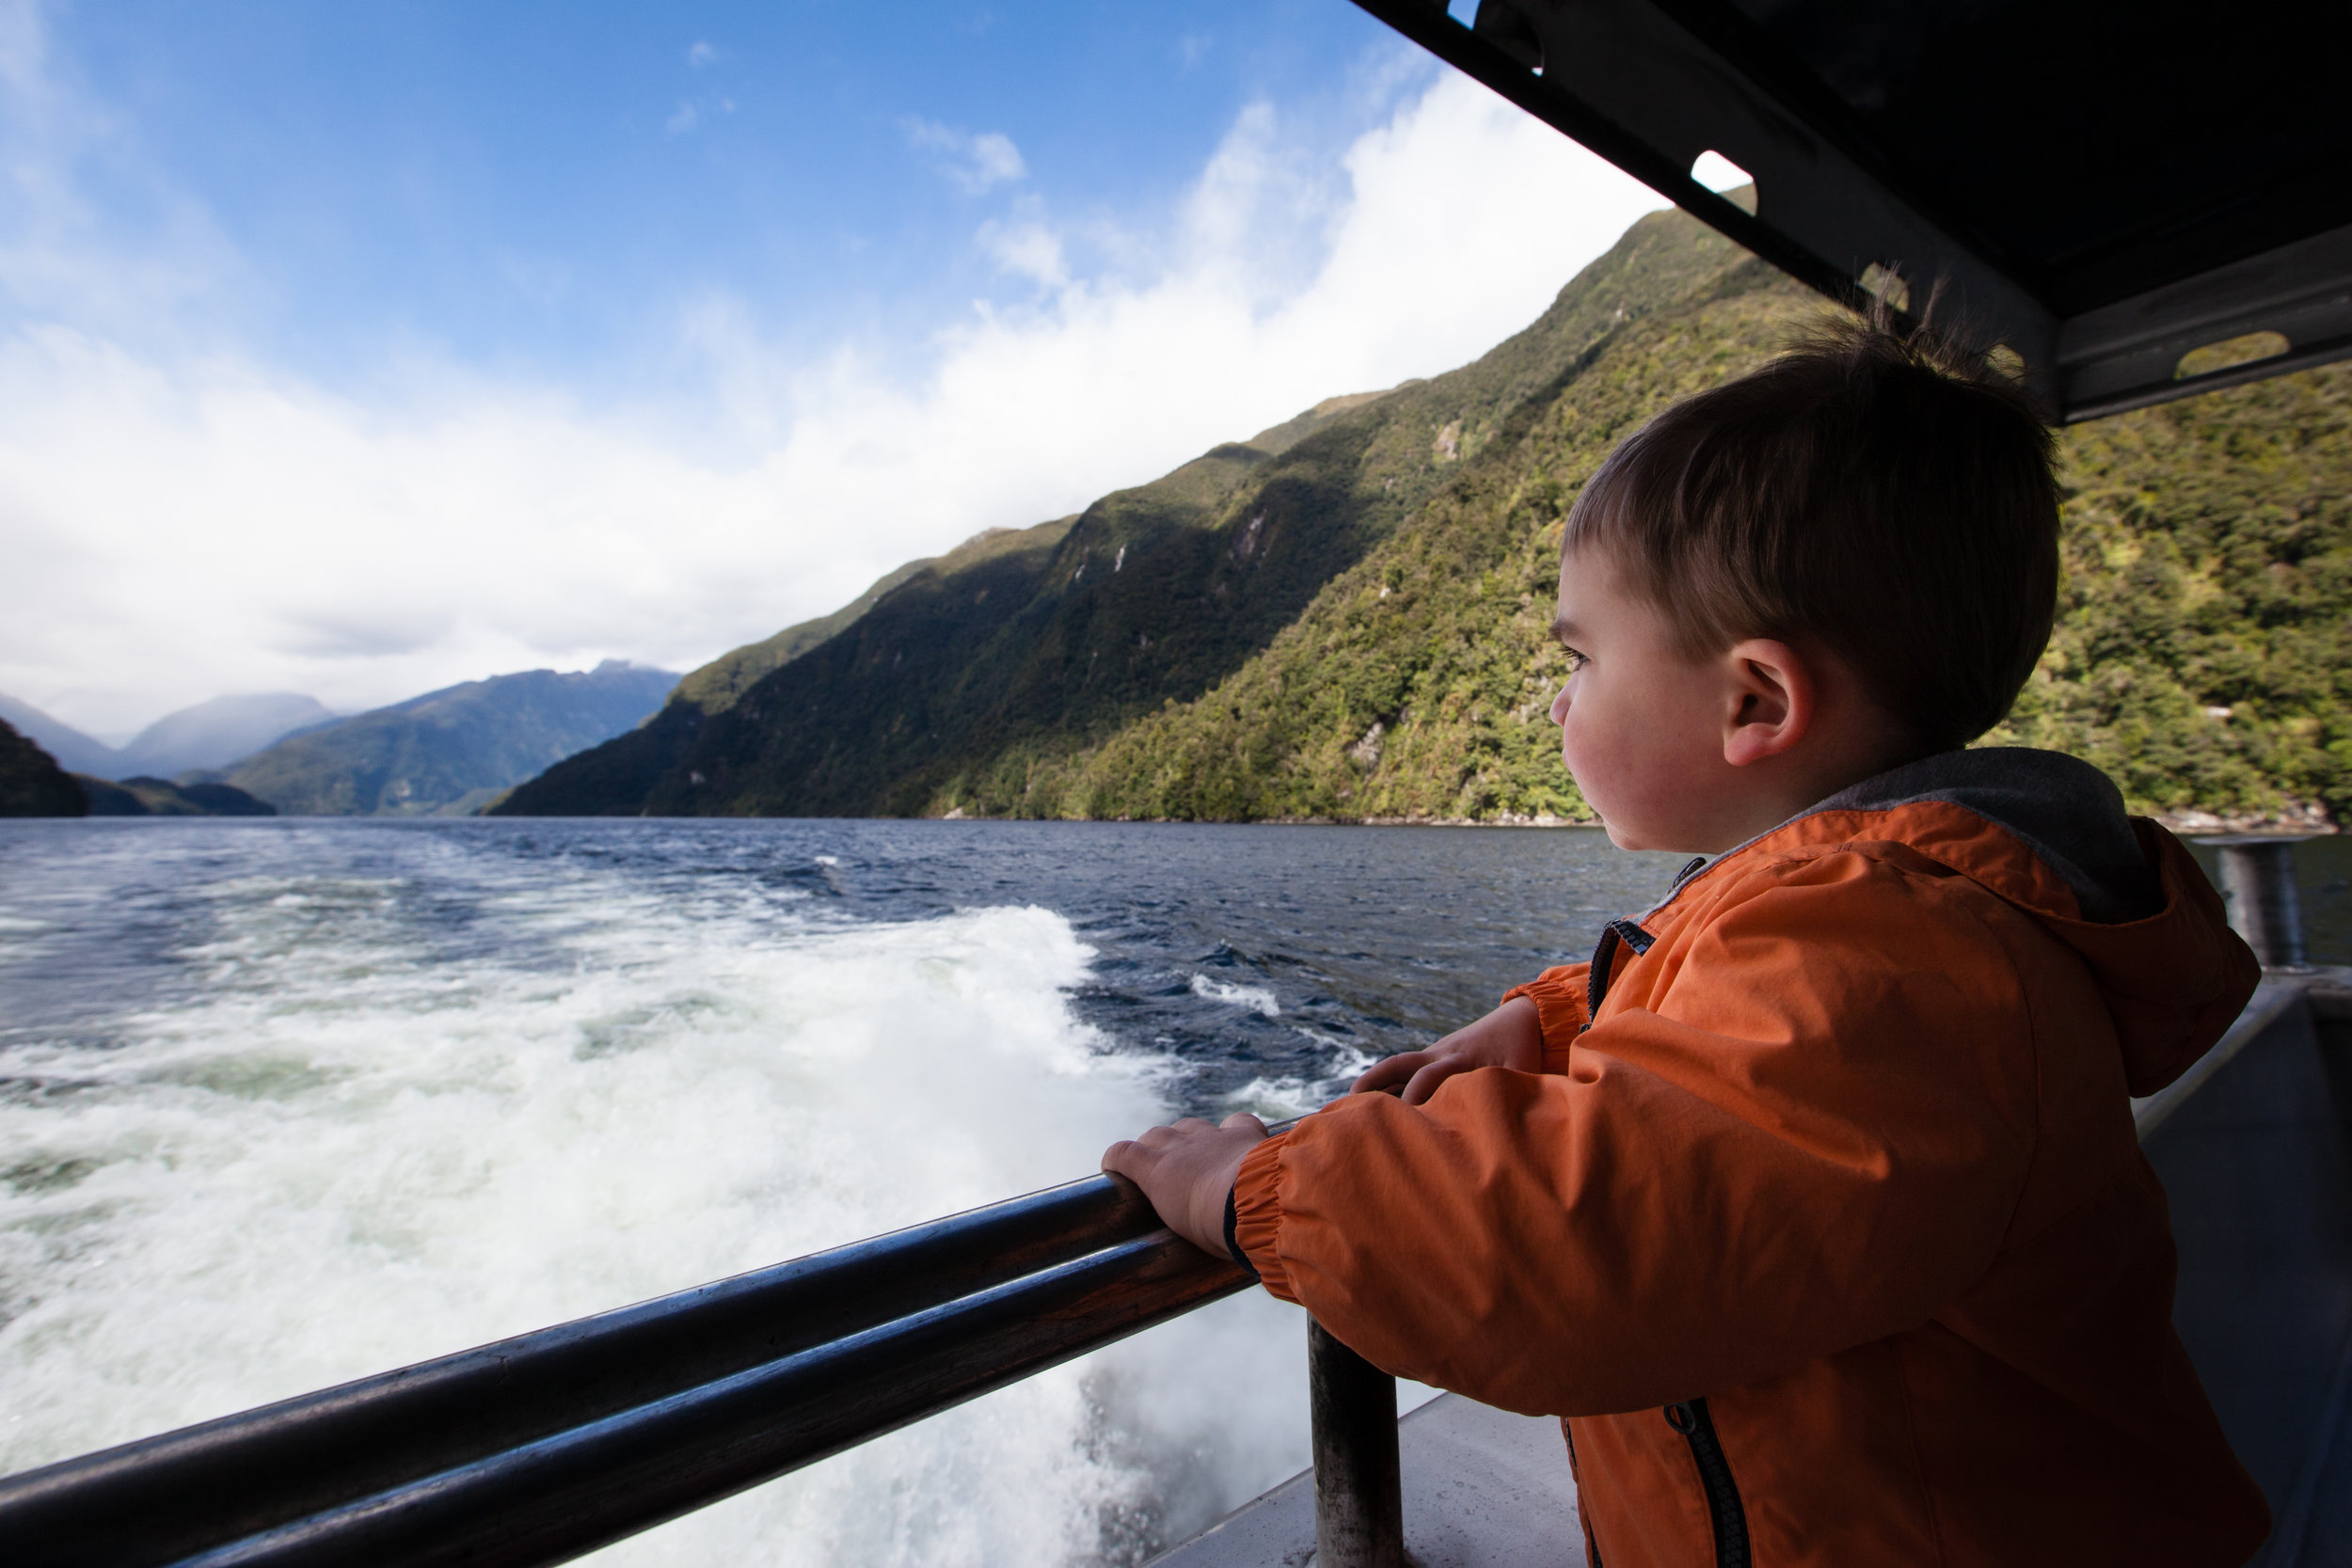 Enjoying the view from the boat in Doubtful Sound.